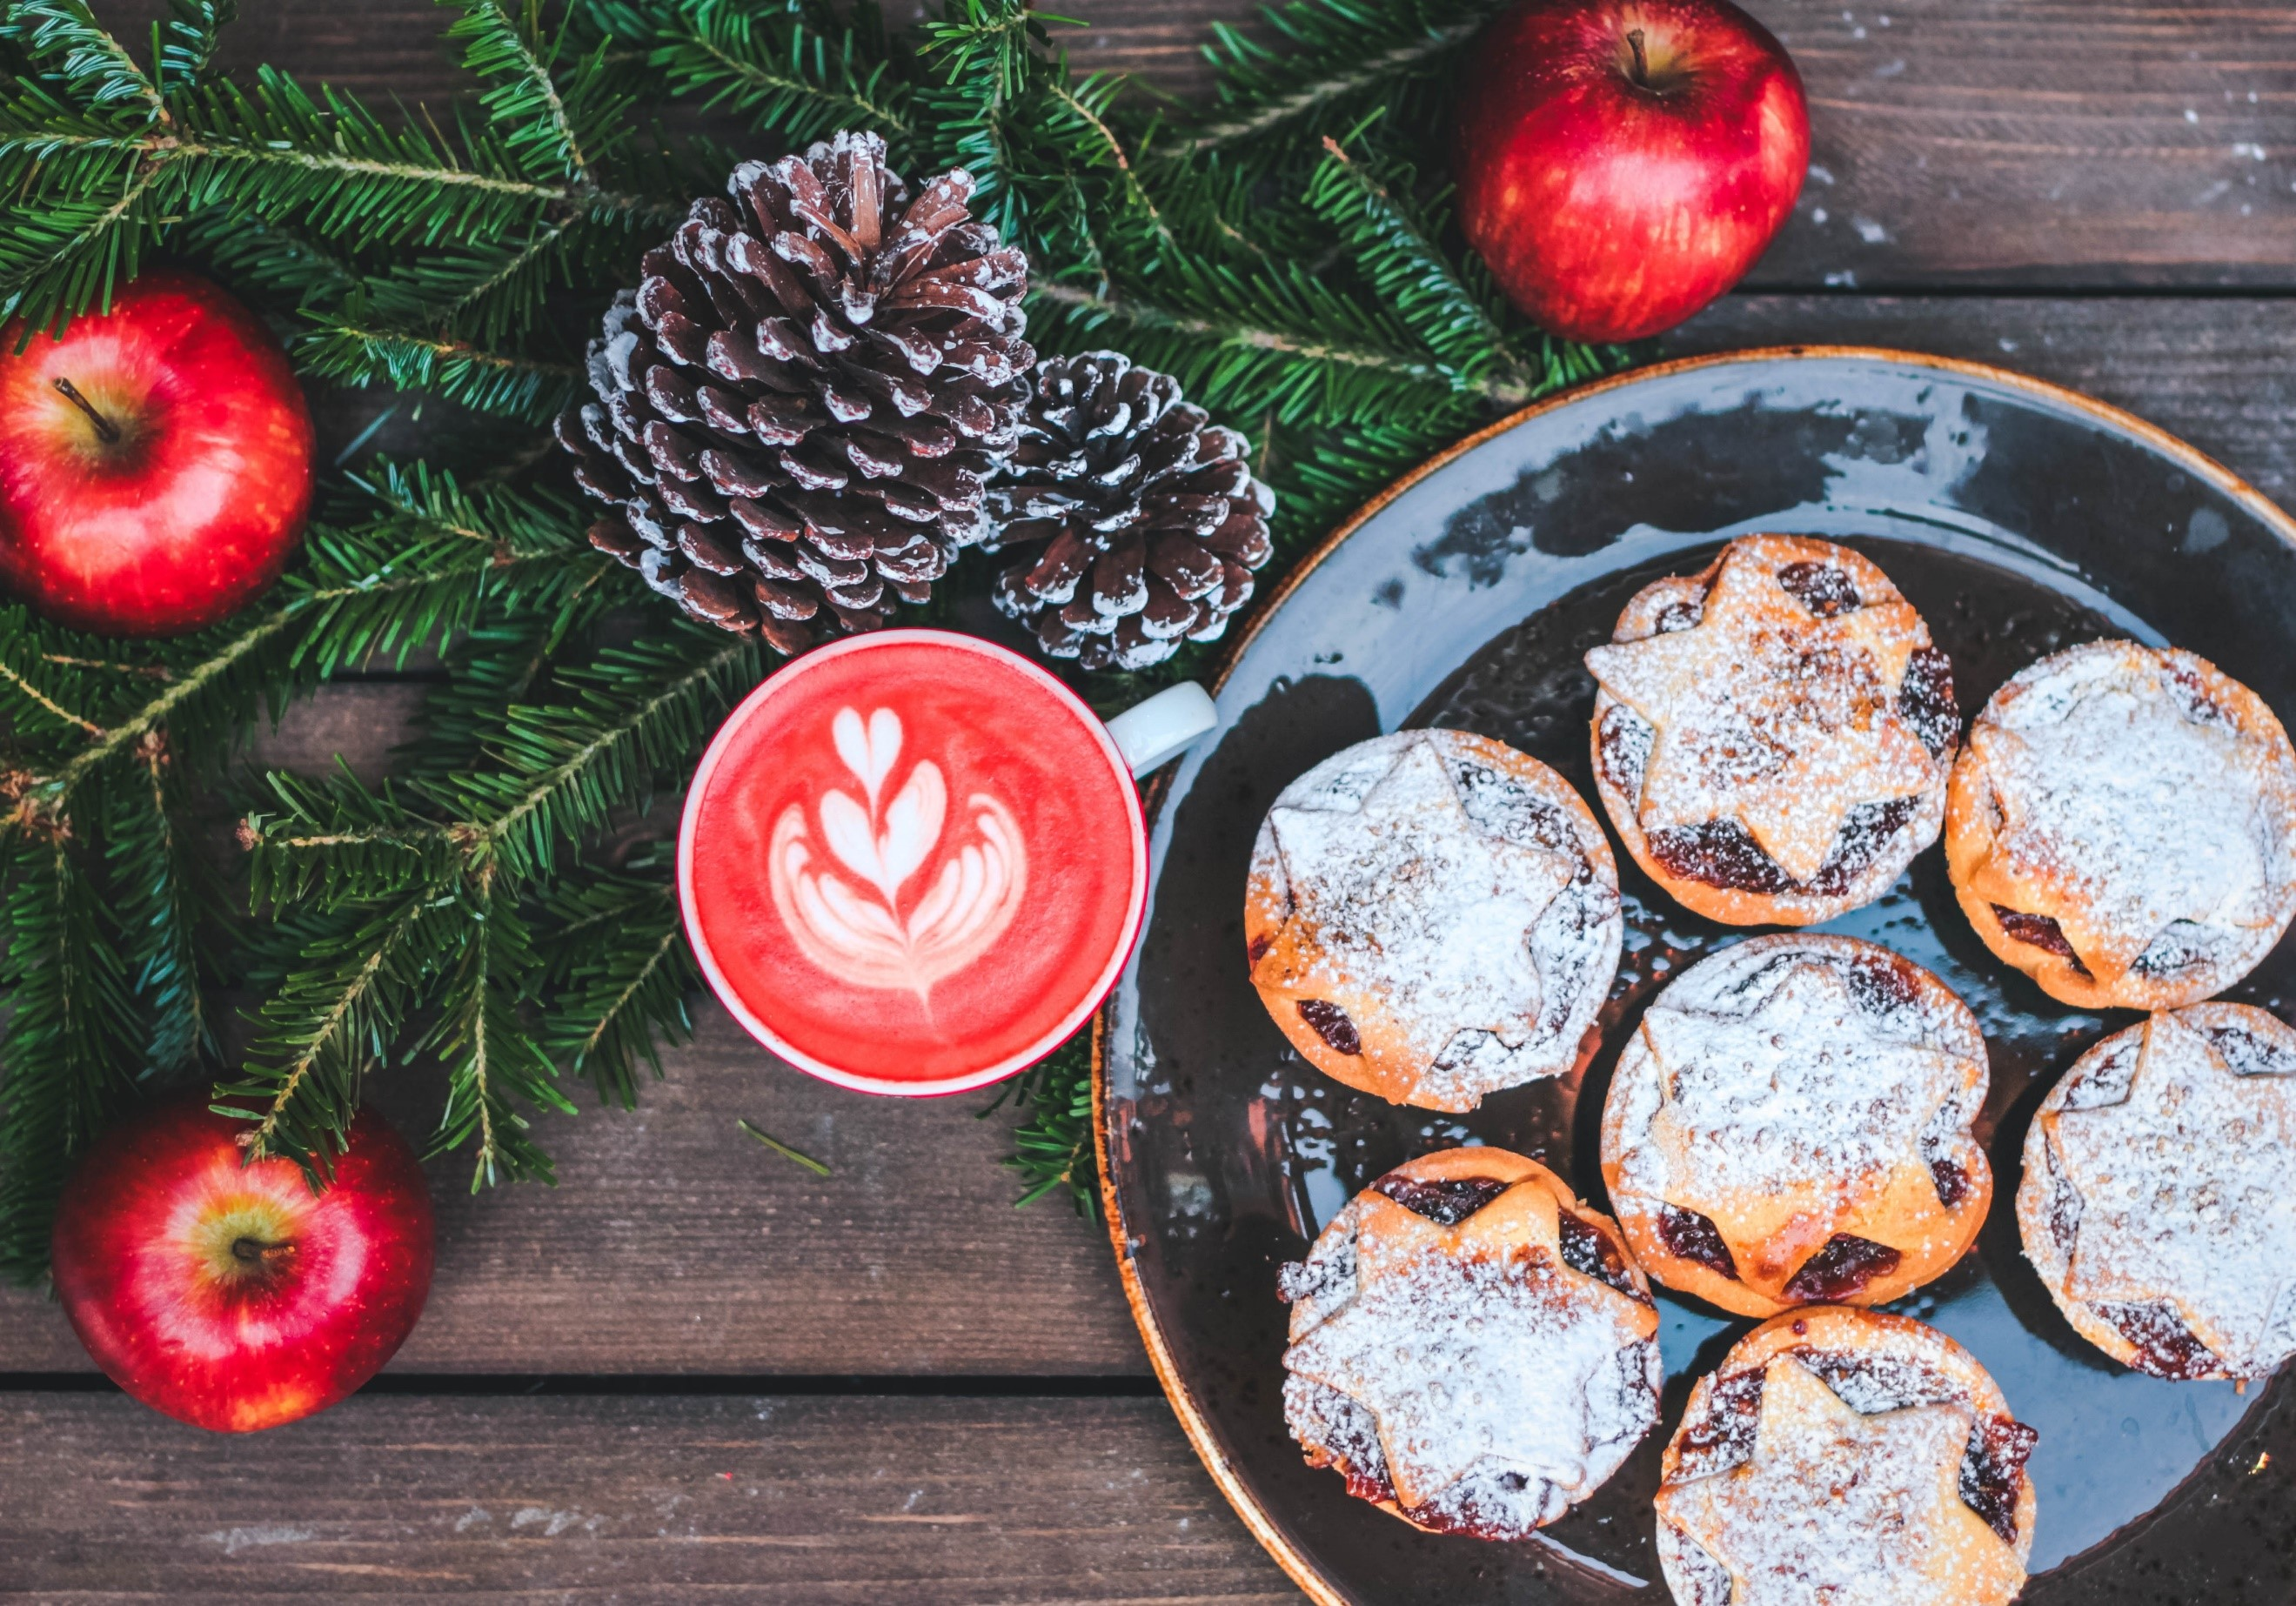 Temptations Christmas.How To Avoid Tasty Temptations At Christmas Ontrack